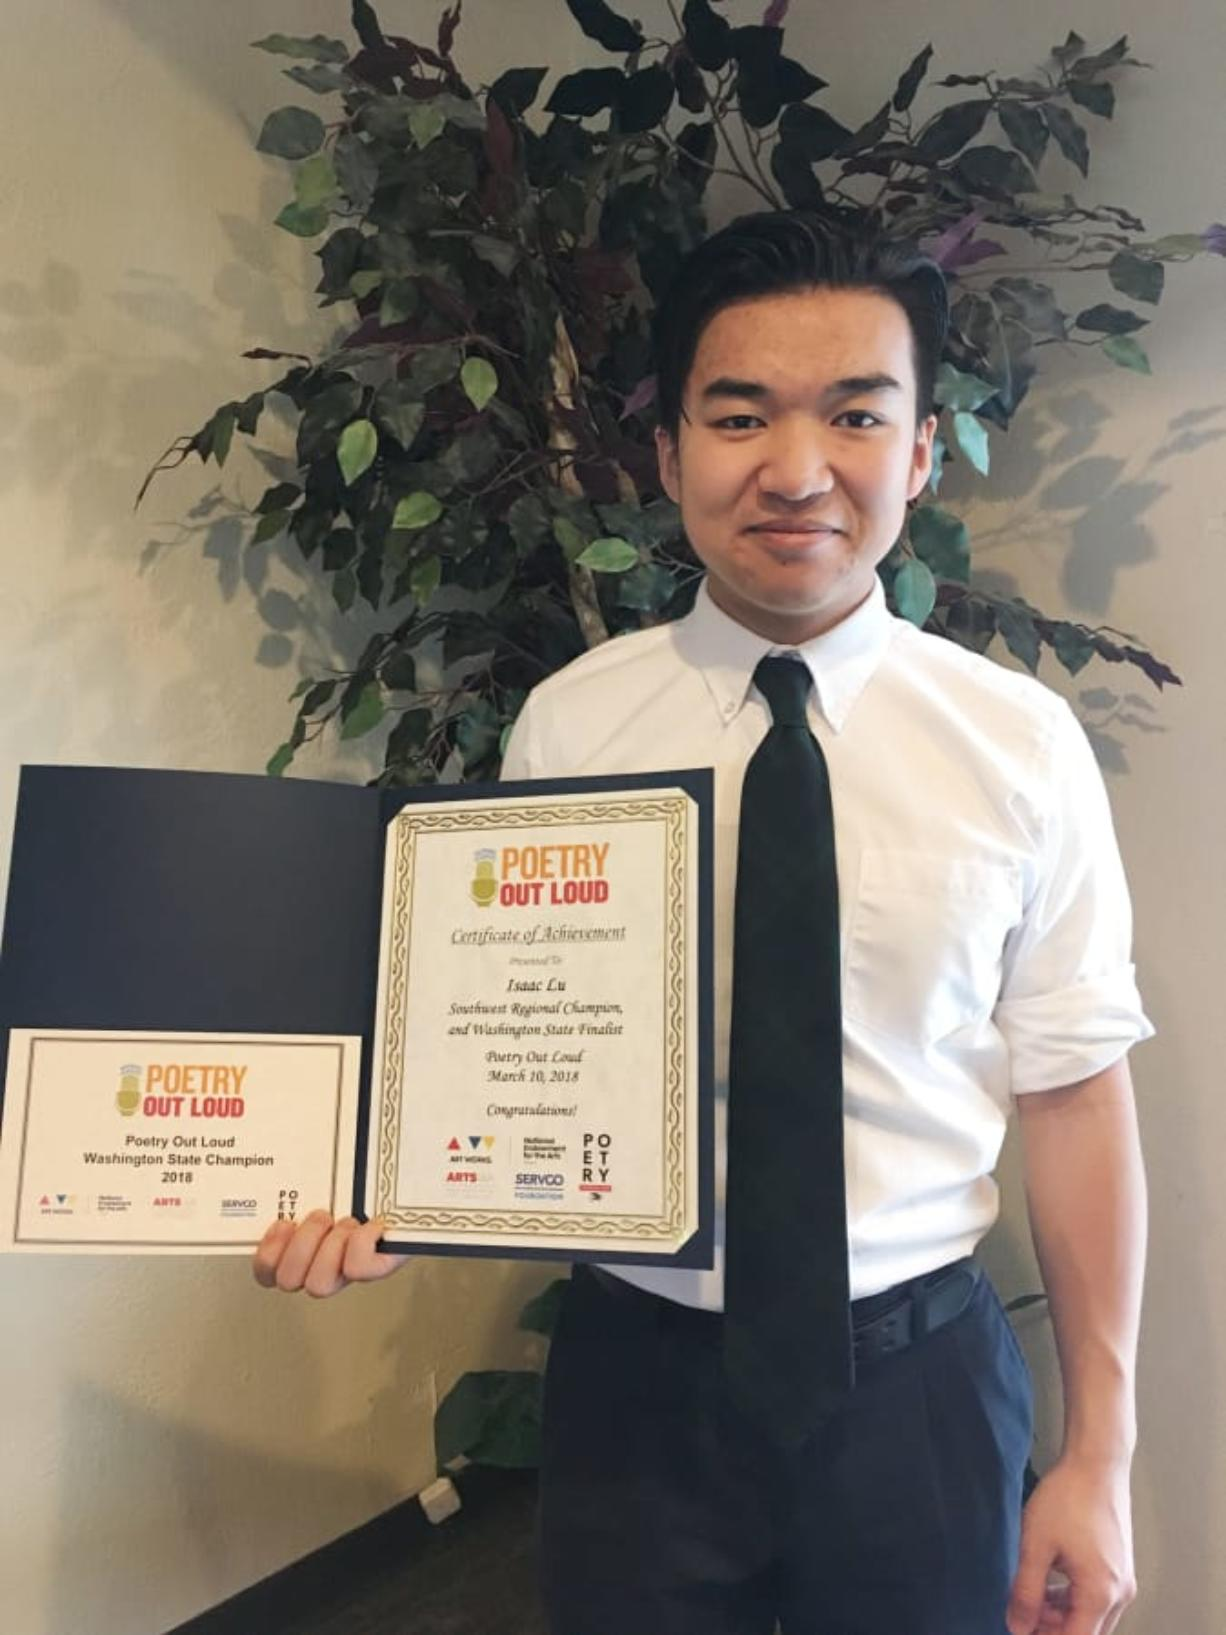 Ridgefield: Cedar Tree Classical Christian School senior Isaac Lu was named Washington state's Poetry Out Loud winner, earning him a spot in the national finals in Washington, D.C.